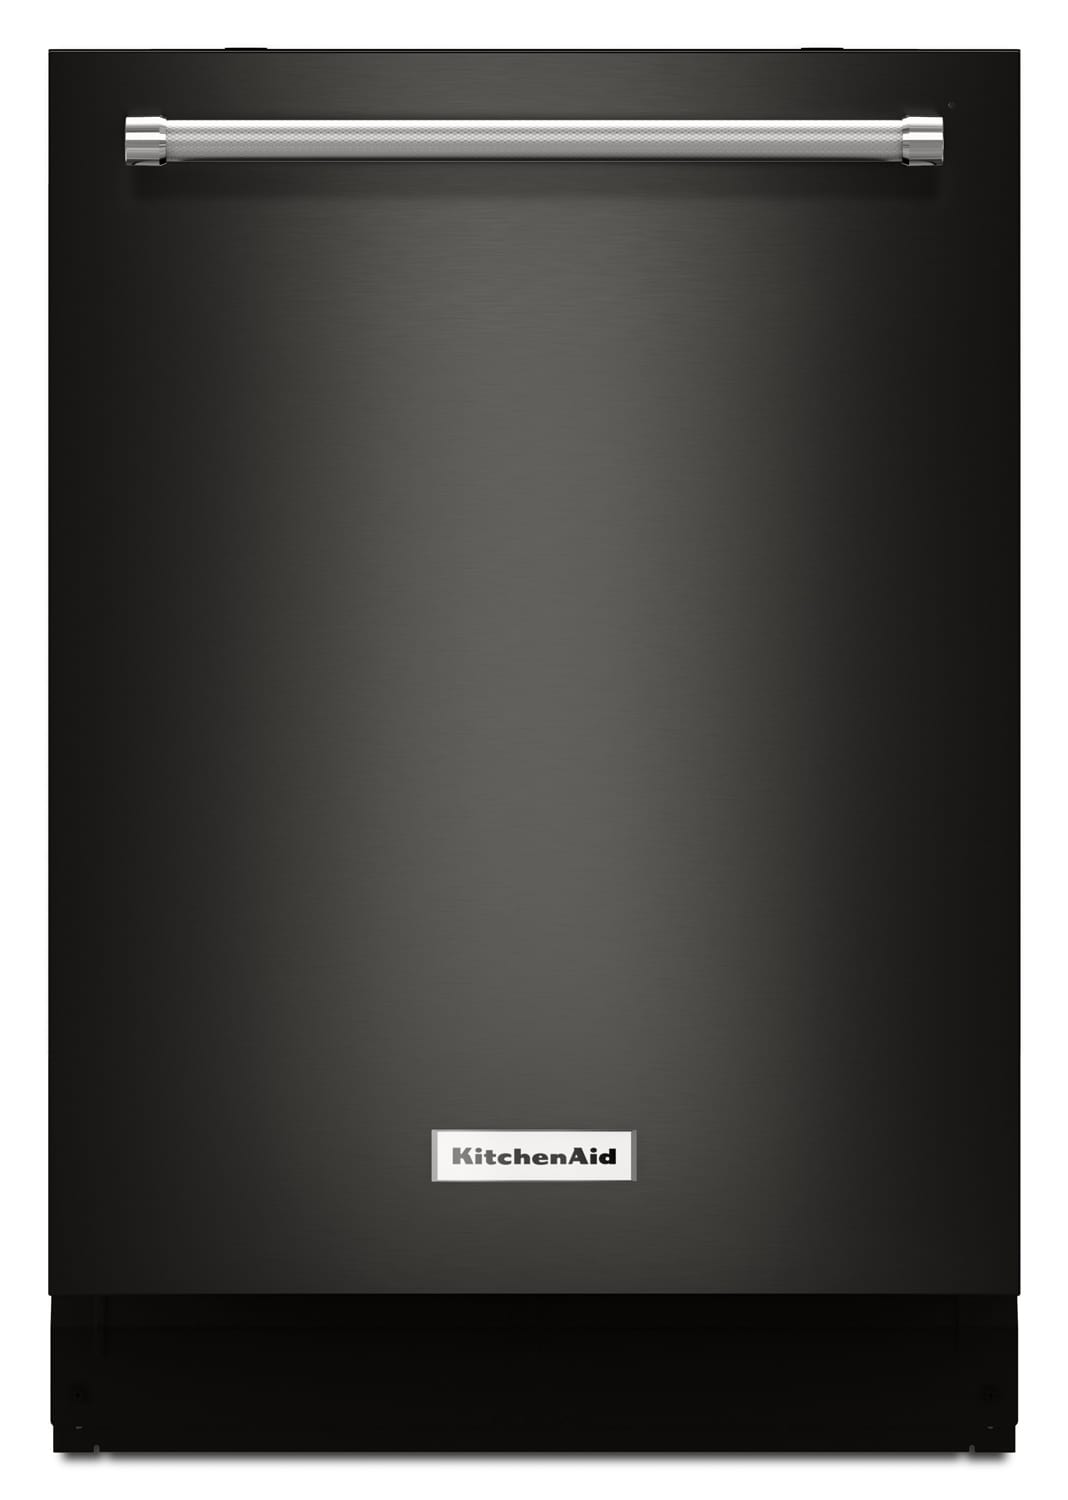 KitchenAid Built-In Top-Control Dishwasher with Dynamic Wash Arms – KDTM404EBS